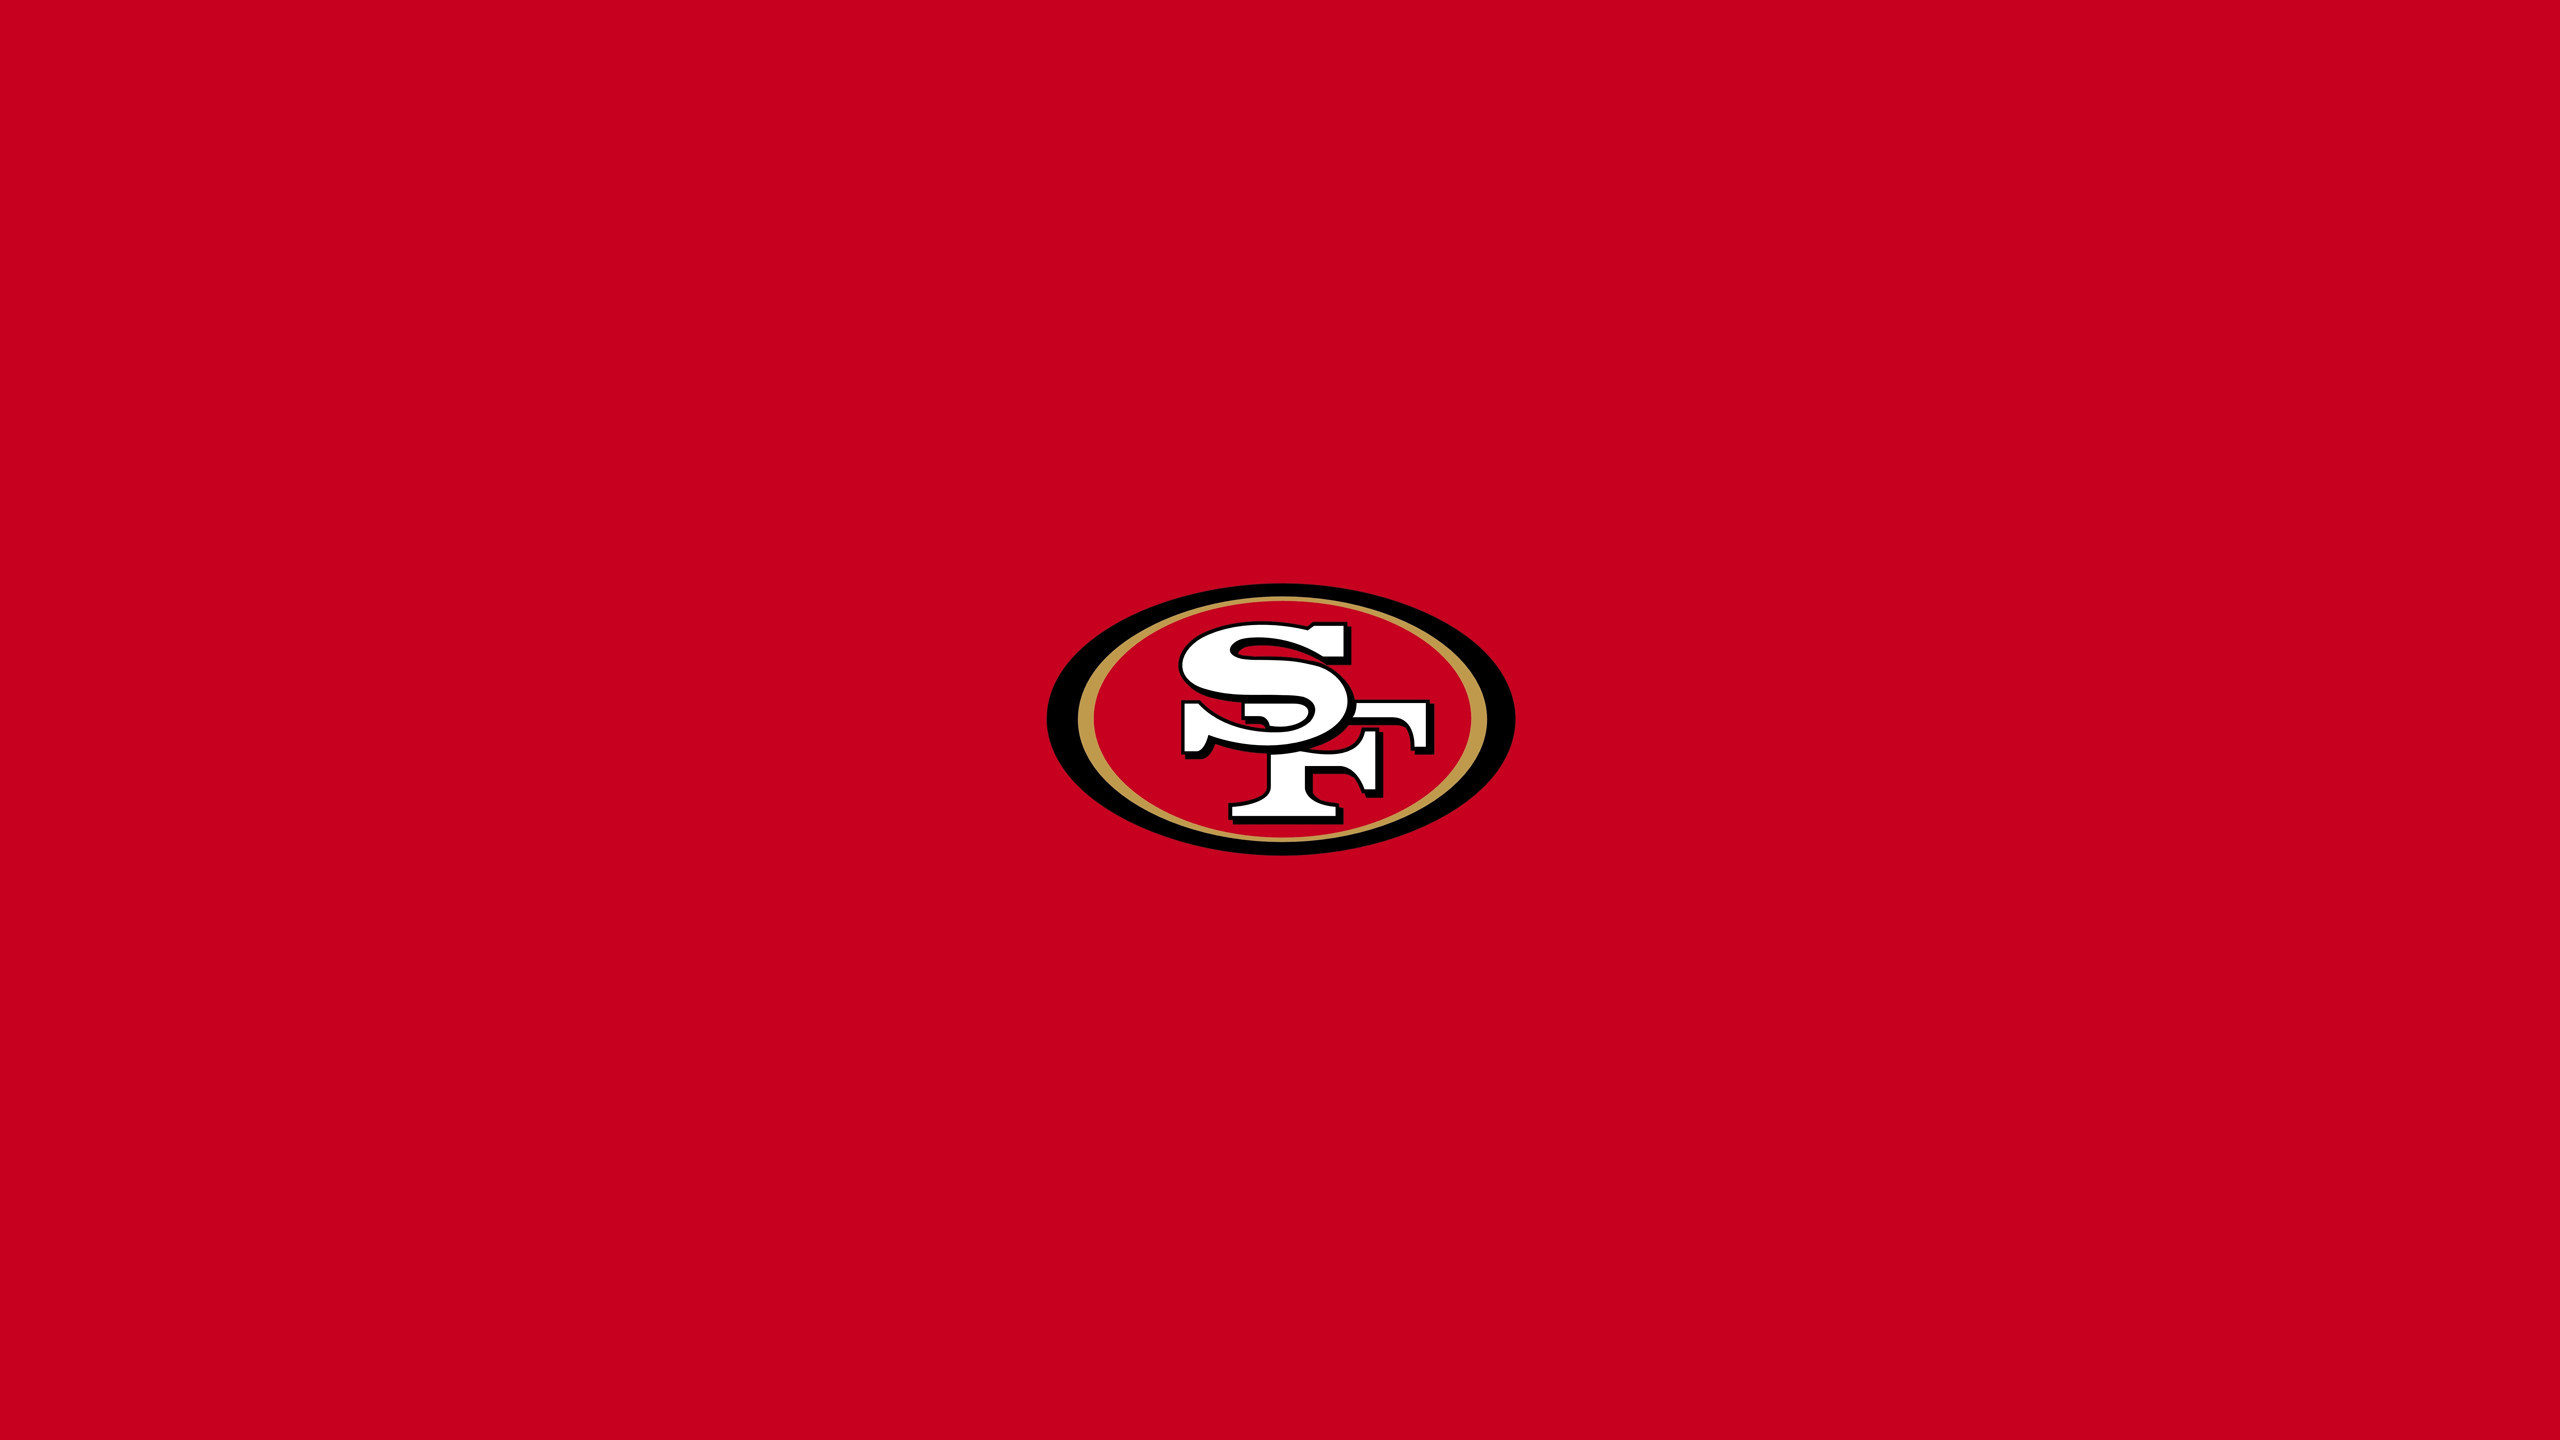 49ers wallpaper wednesday 67 images 1920x1080 49ers wallpaper 5245 2560x1440 px hdwallsource voltagebd Image collections